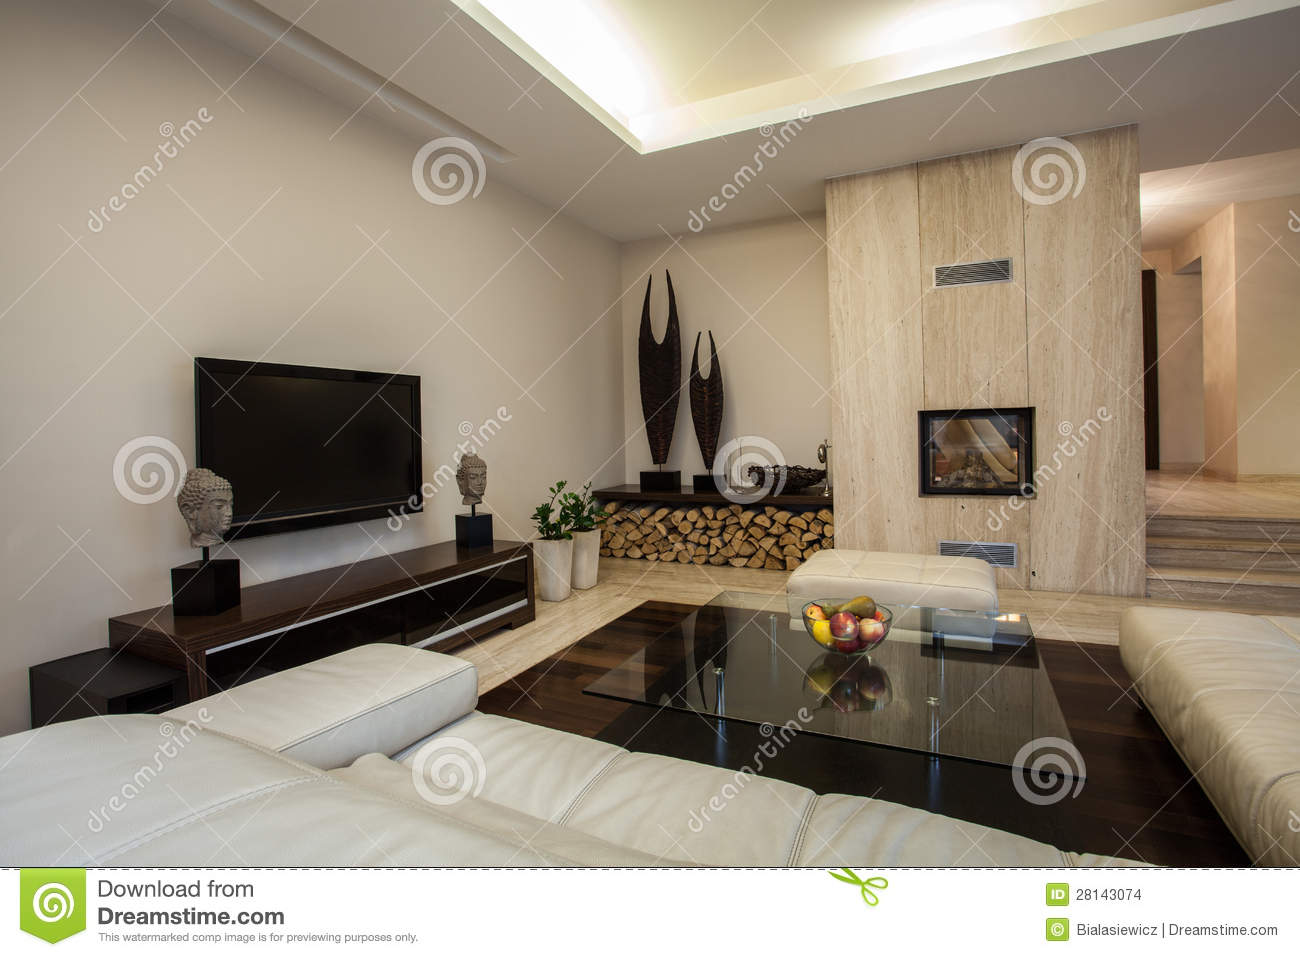 travertine house: spacious living room stock images - image: 28143074